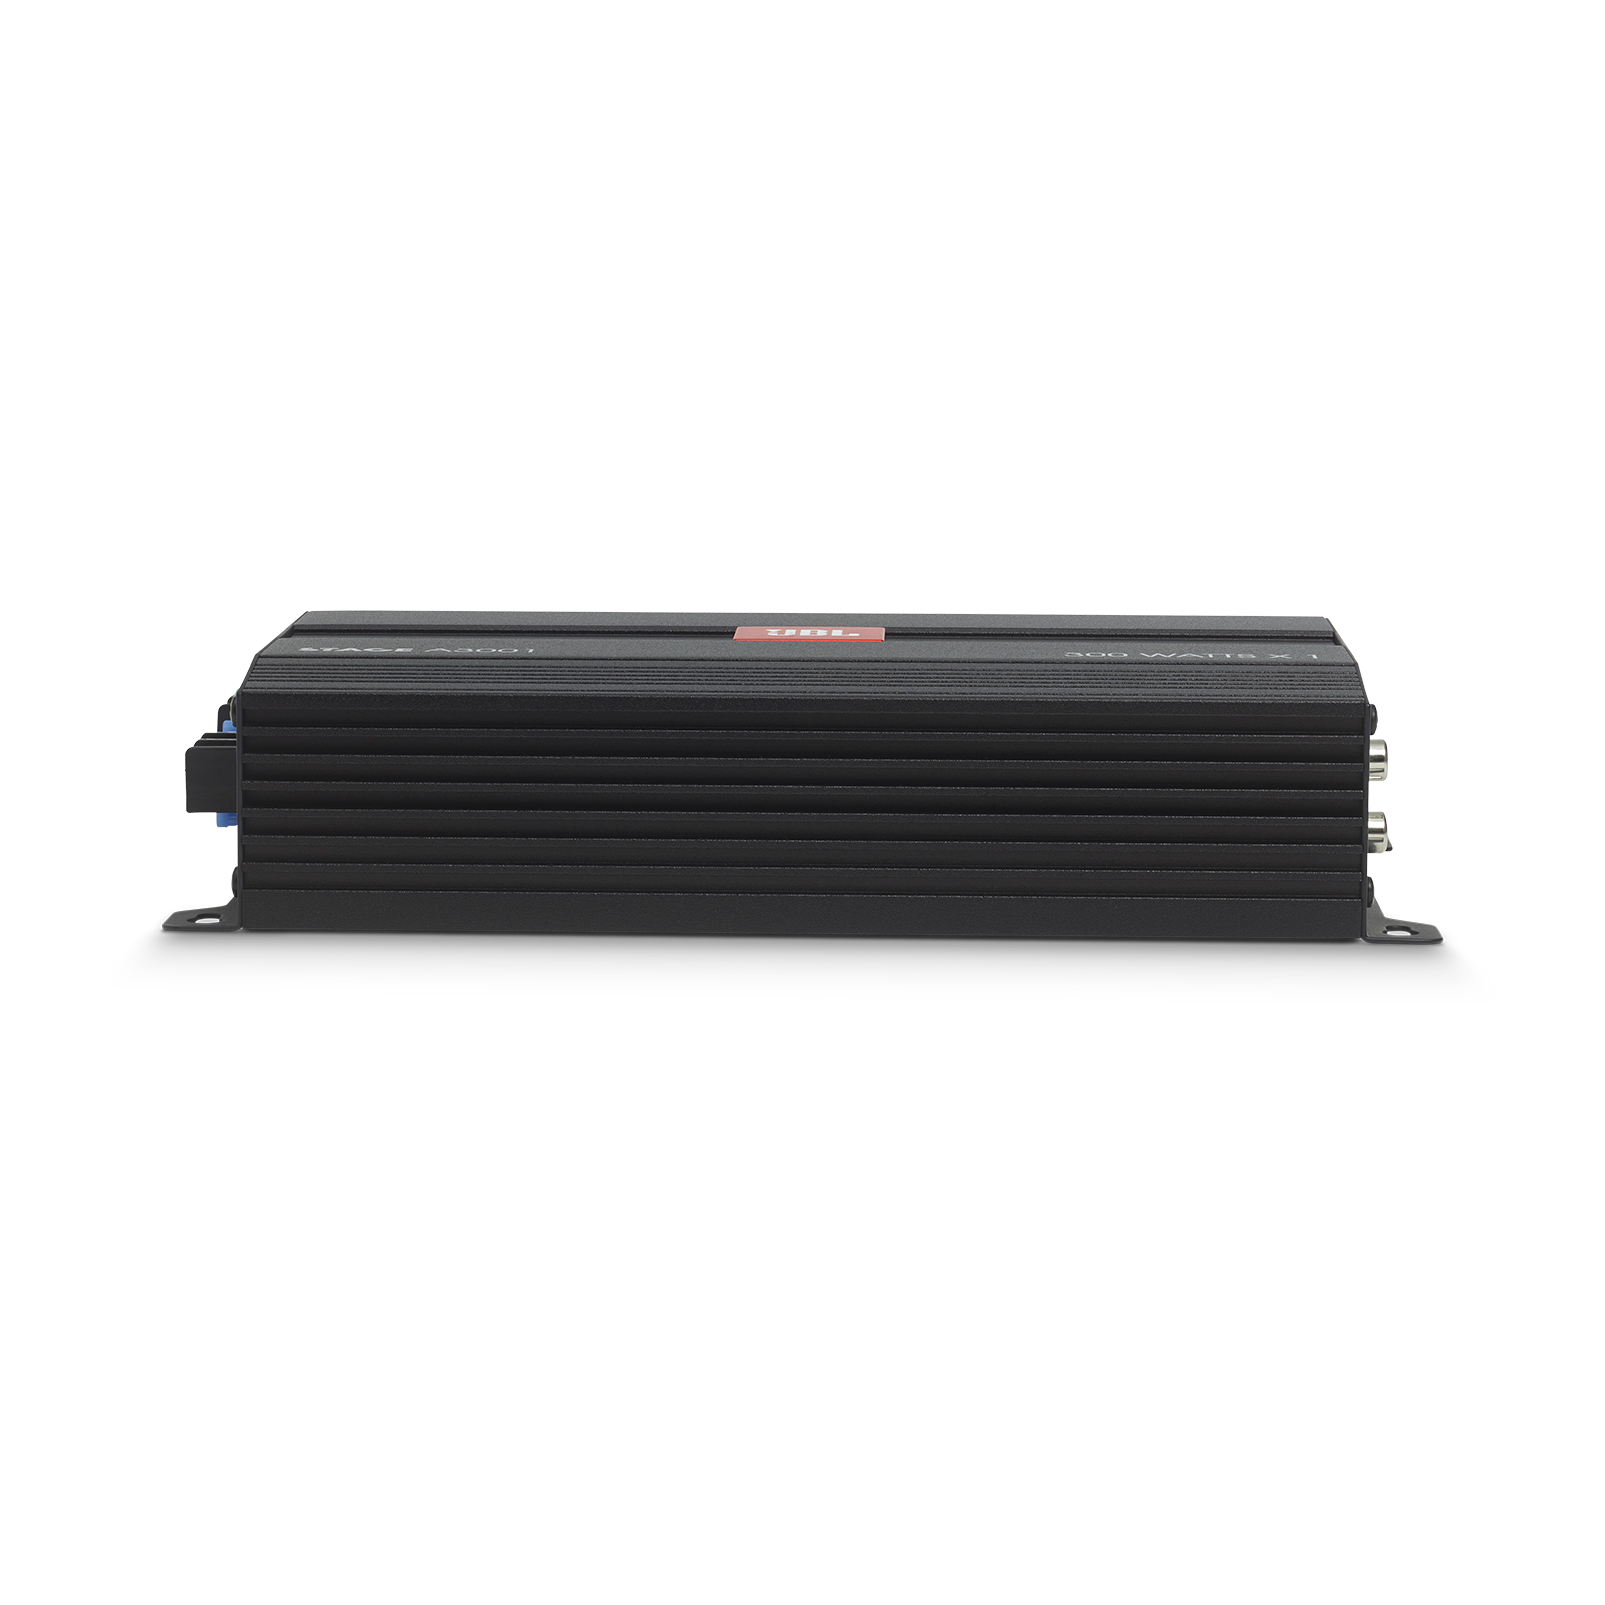 JBL Stage Amplifier A3001 - Black - Class D Car Audio Amplifier - Detailshot 3